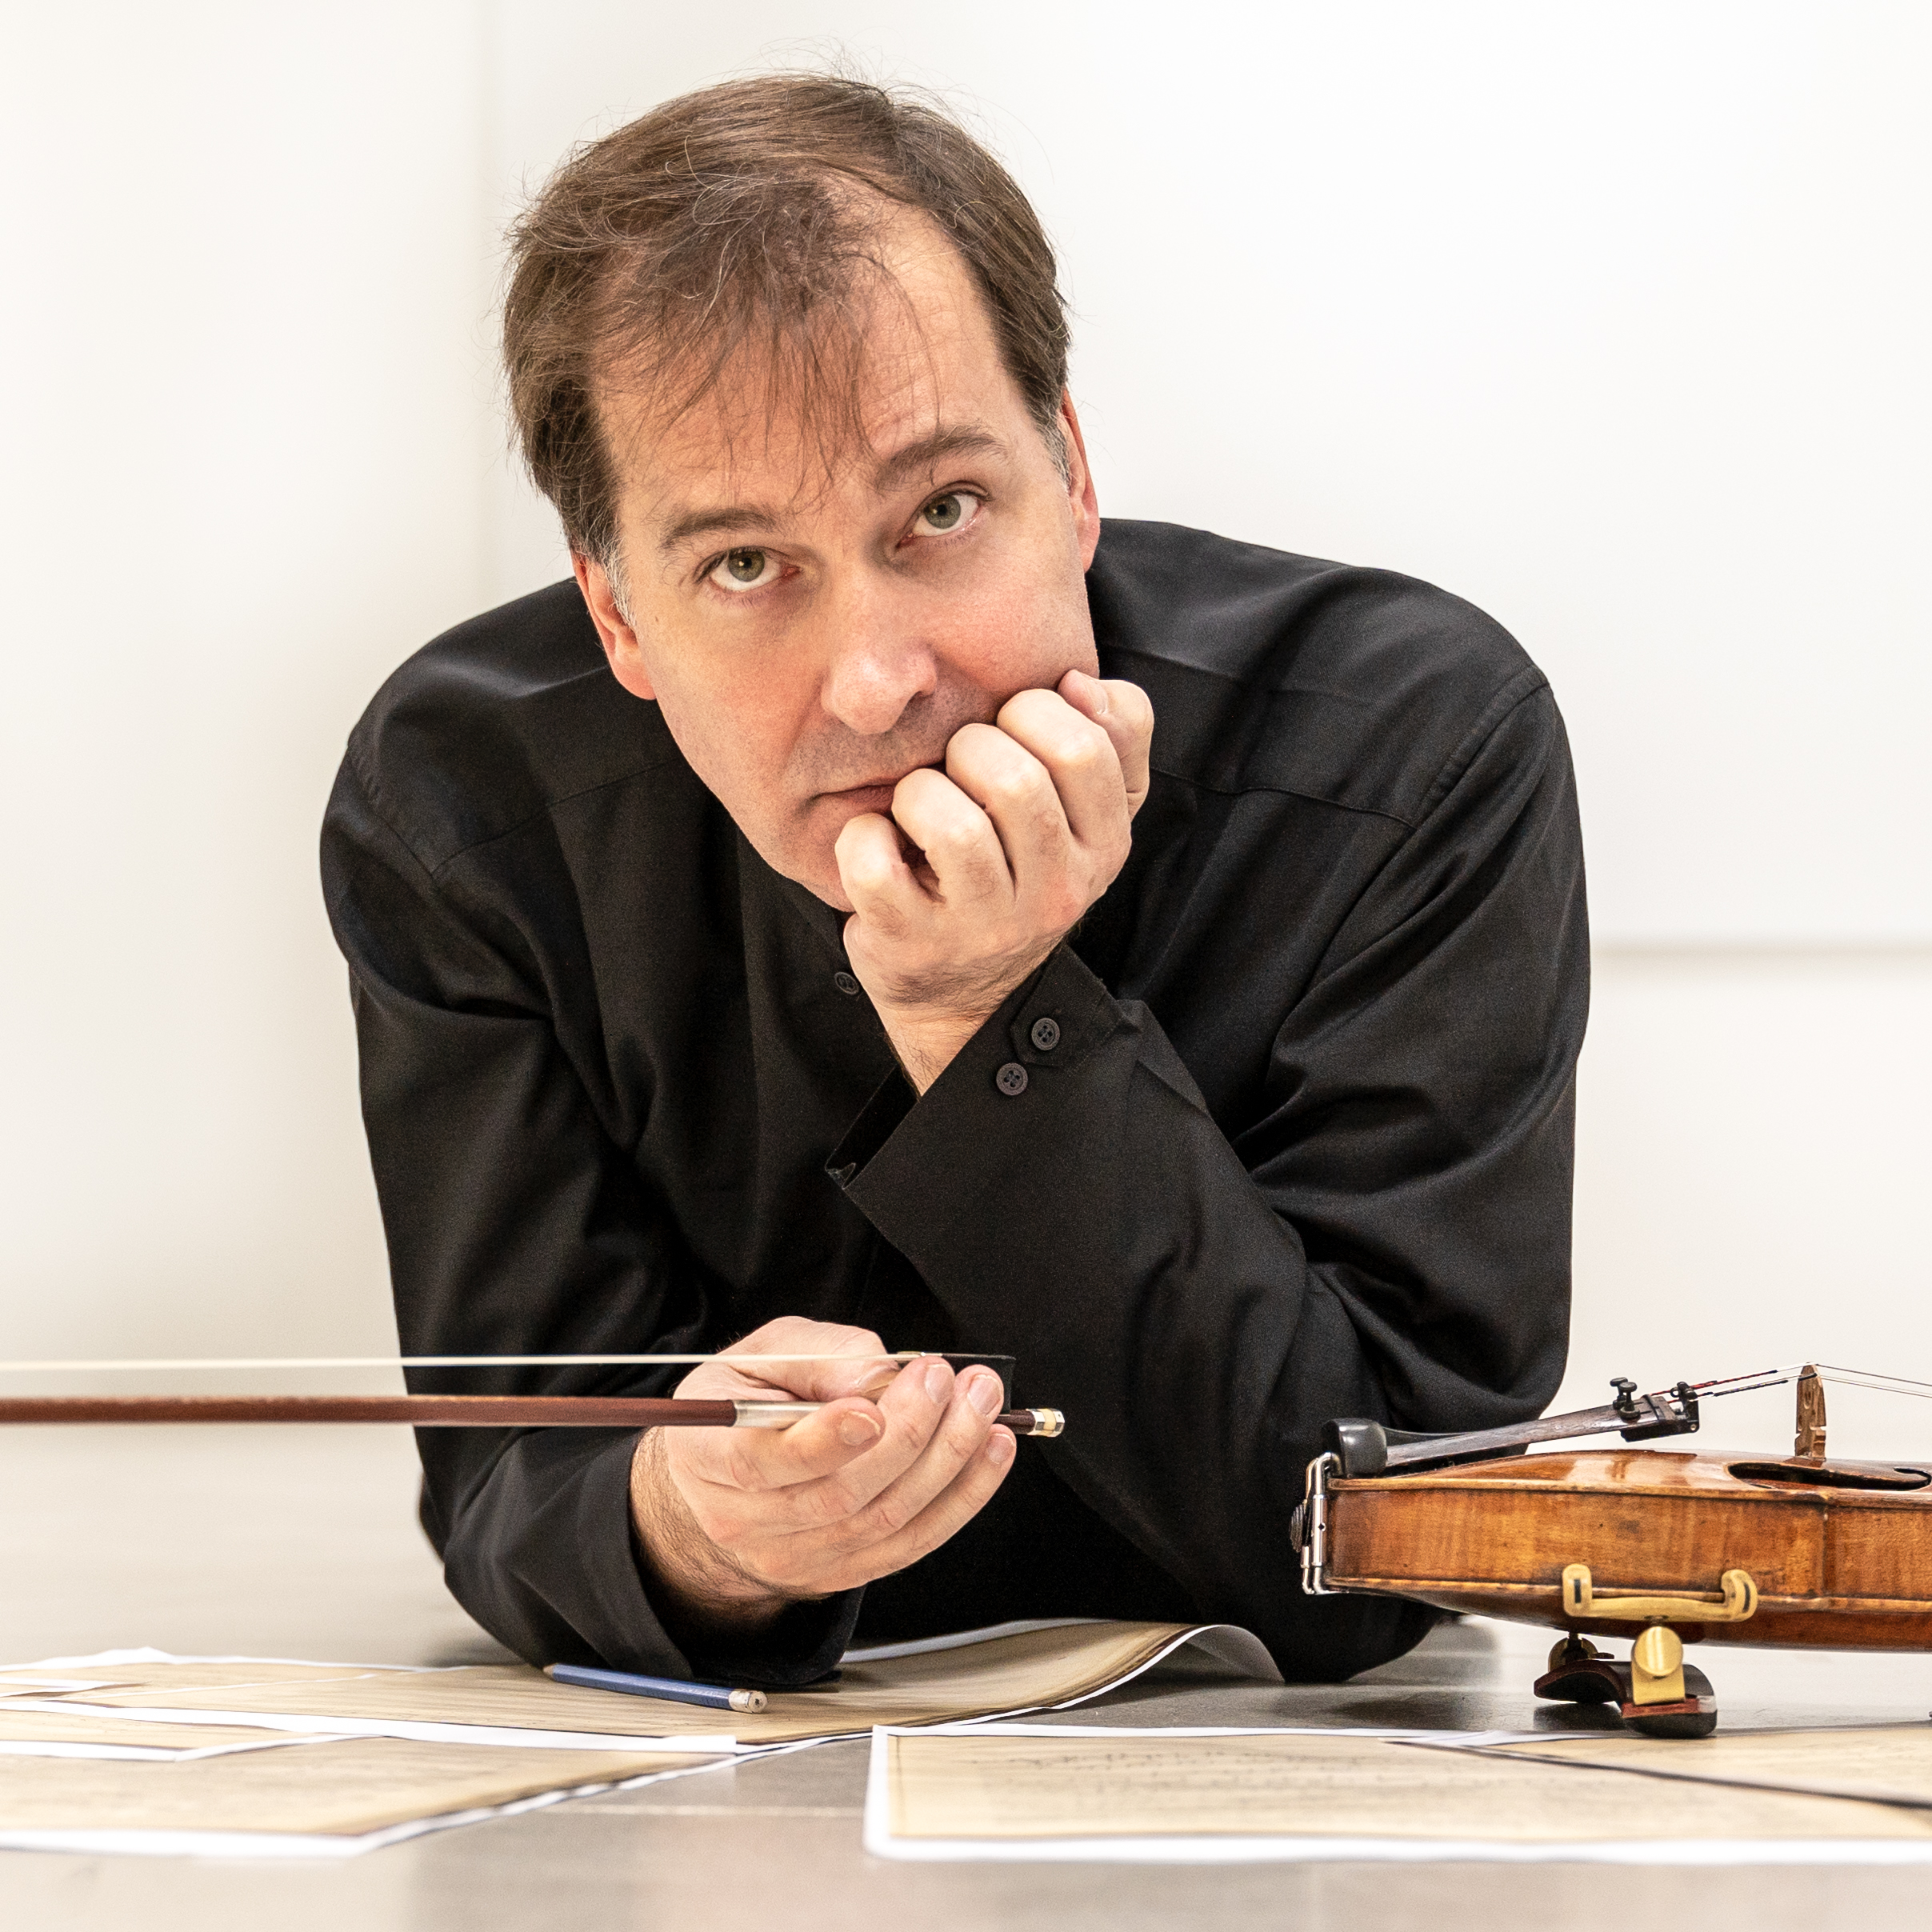 French violinist Philippe Graffin performs the seventh Ysaÿe sonata at the Rockport Chamber Music Festival this week. The work was unknown until Graffin discovered it in 2017.